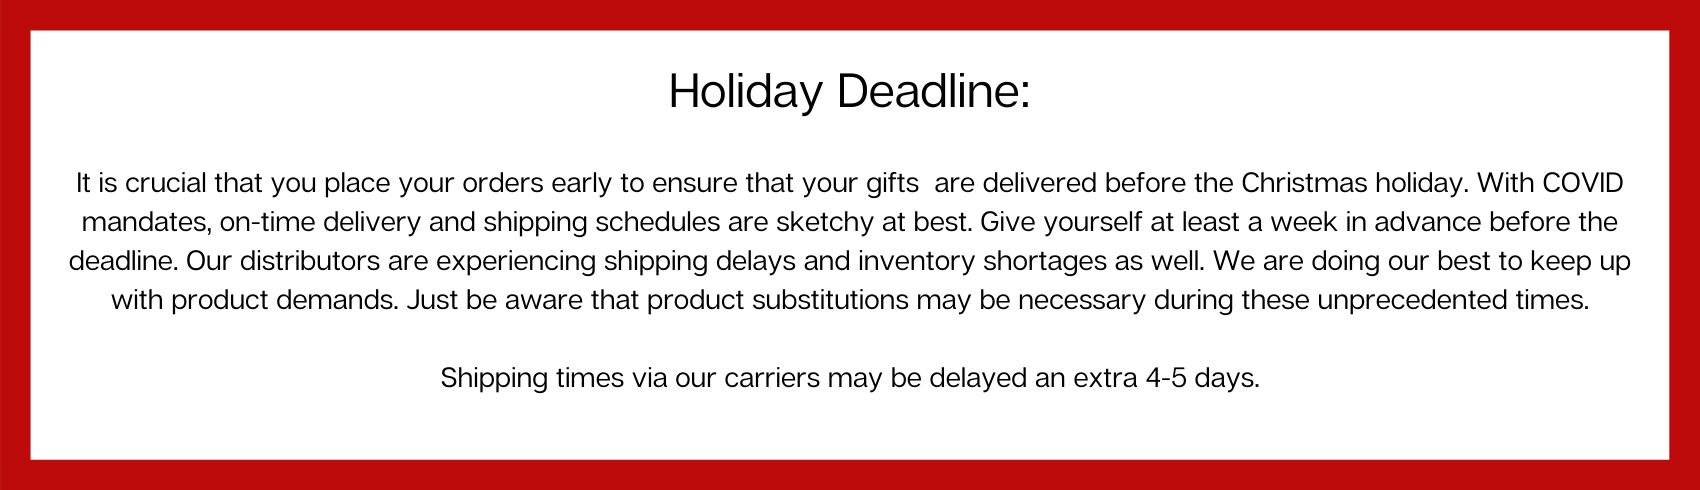 holiday-deadline.png